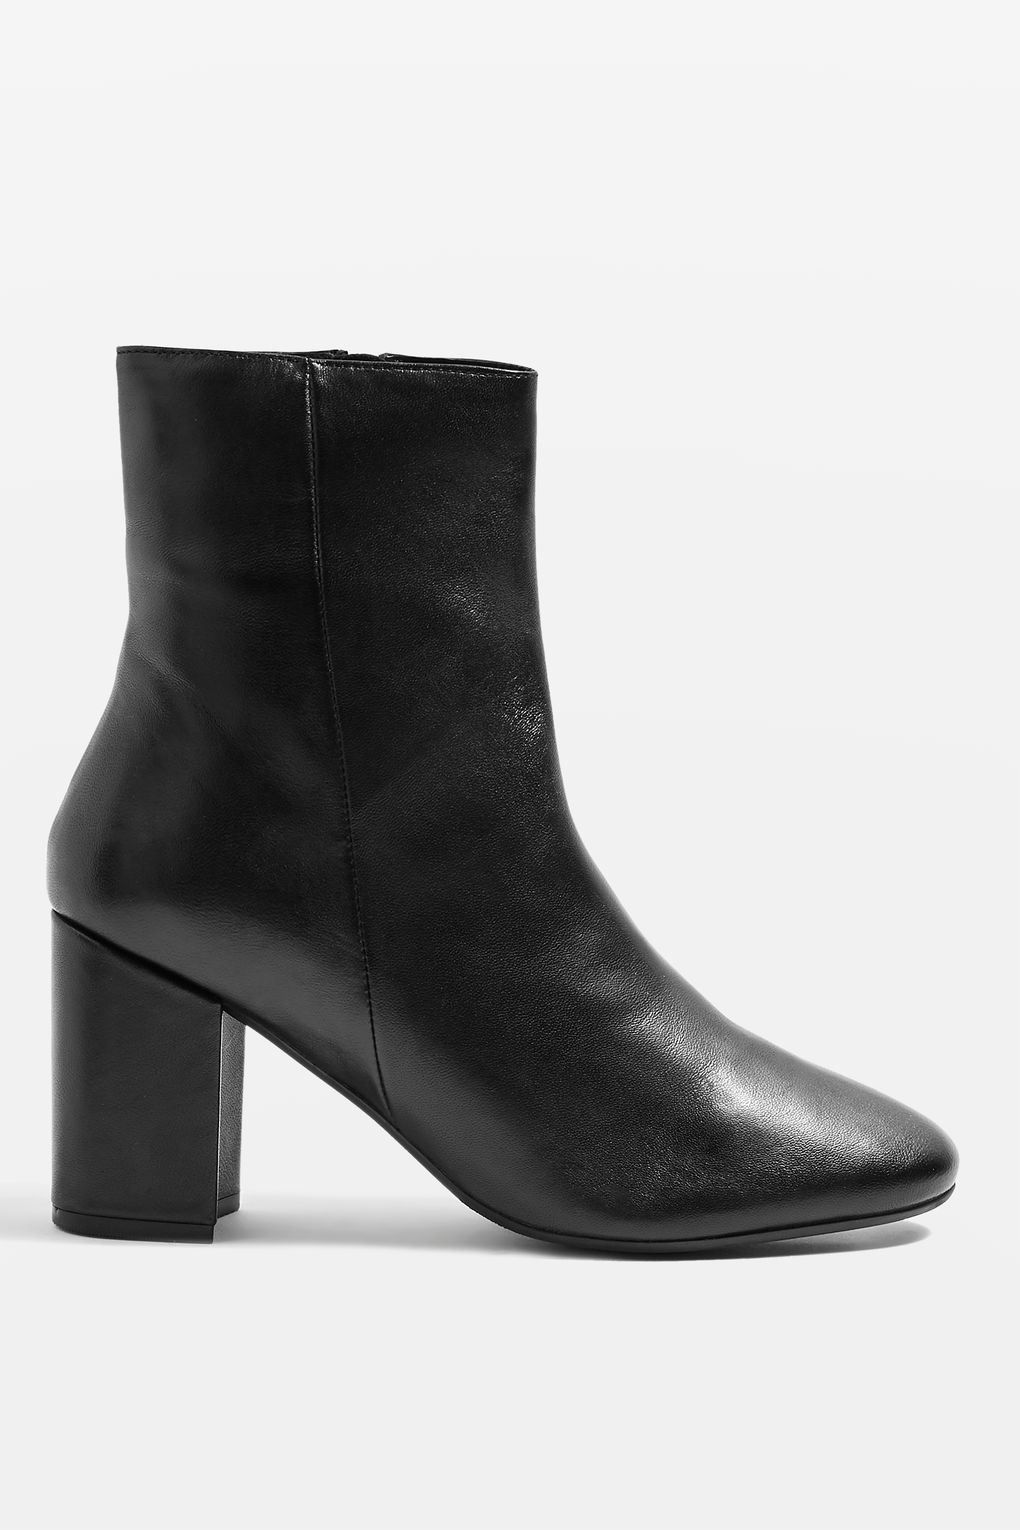 How To Wear Ankle Boots - Ankle Boot Outfit Ideas for Fall and Winter abba1870eb2d